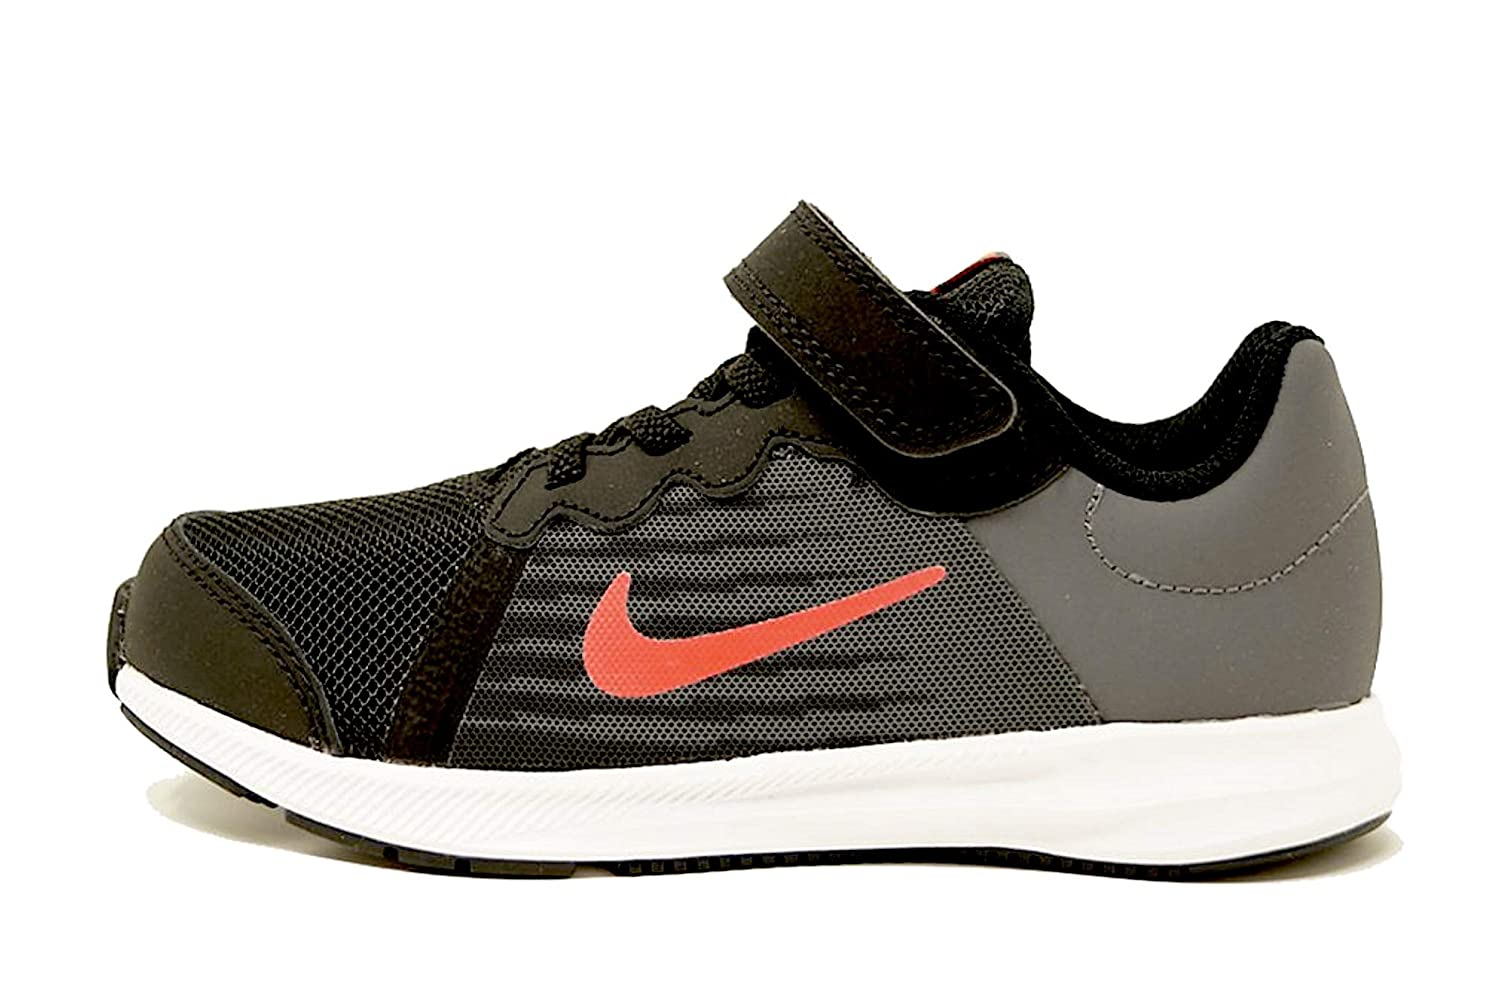 reputable site 67400 b40eb Amazon.com   Nike Kids Boy s Downshifter 8 (Little Kid)   Running